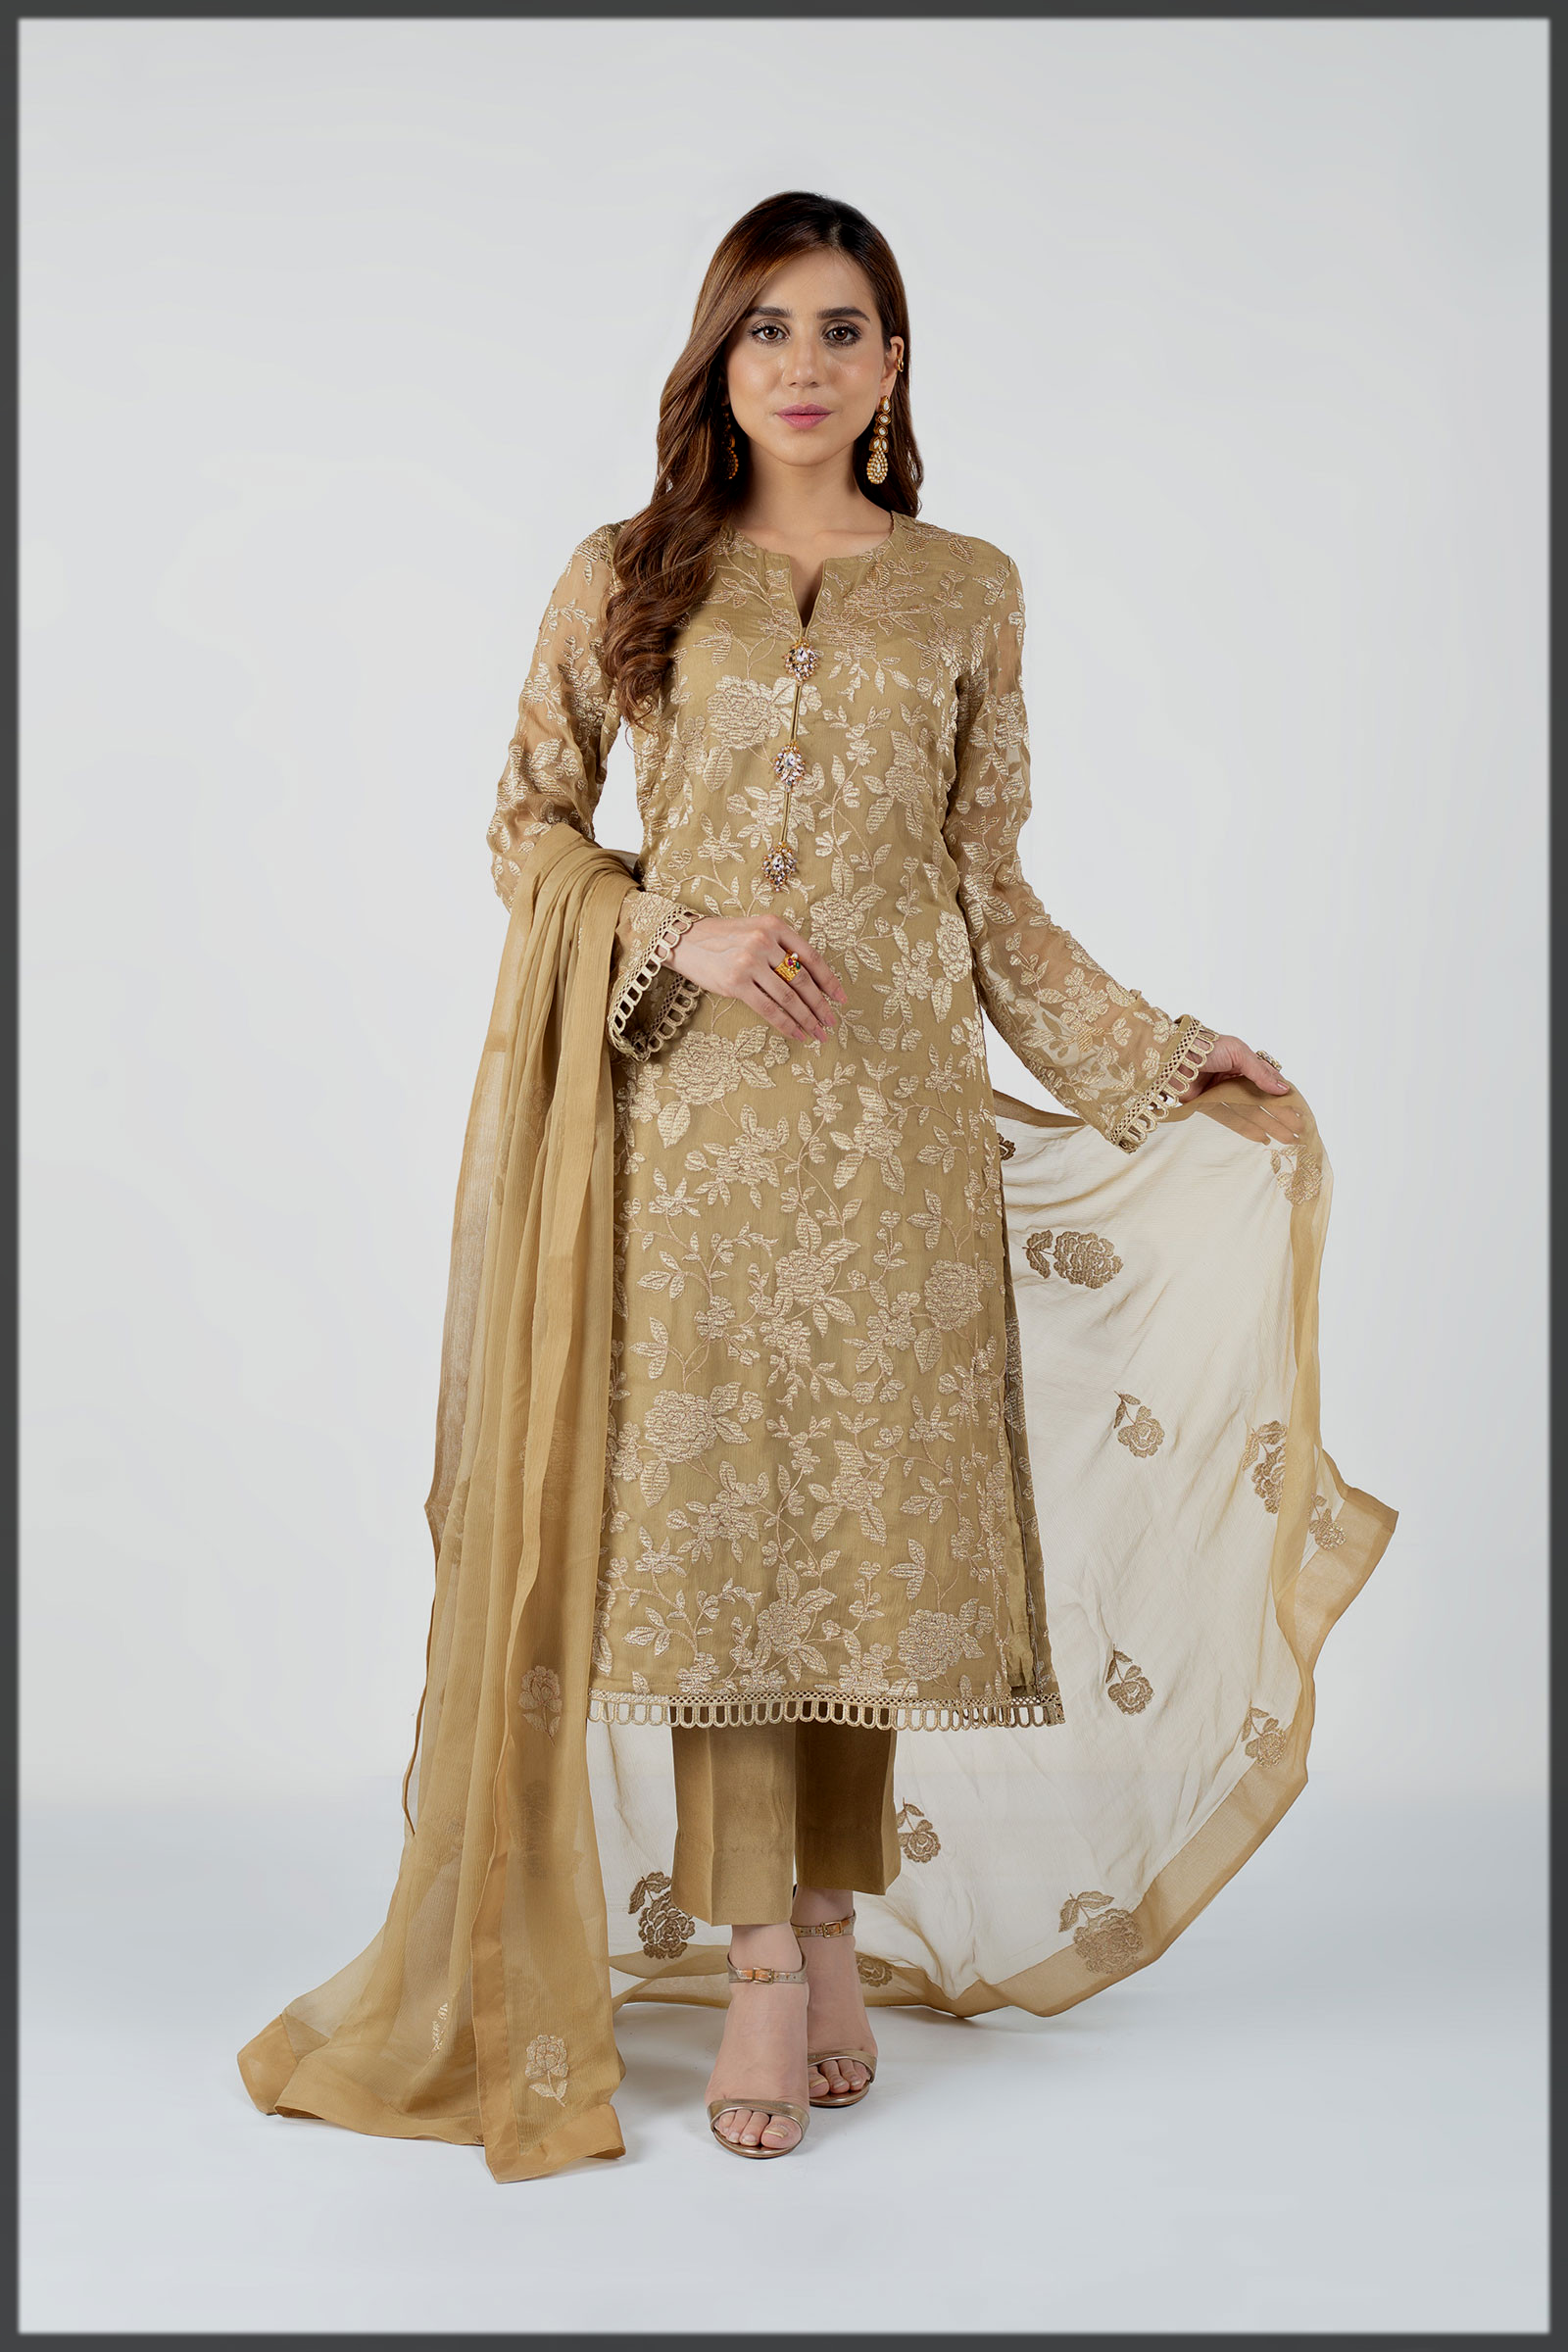 Embroidered Chiffon outfit for winter parties